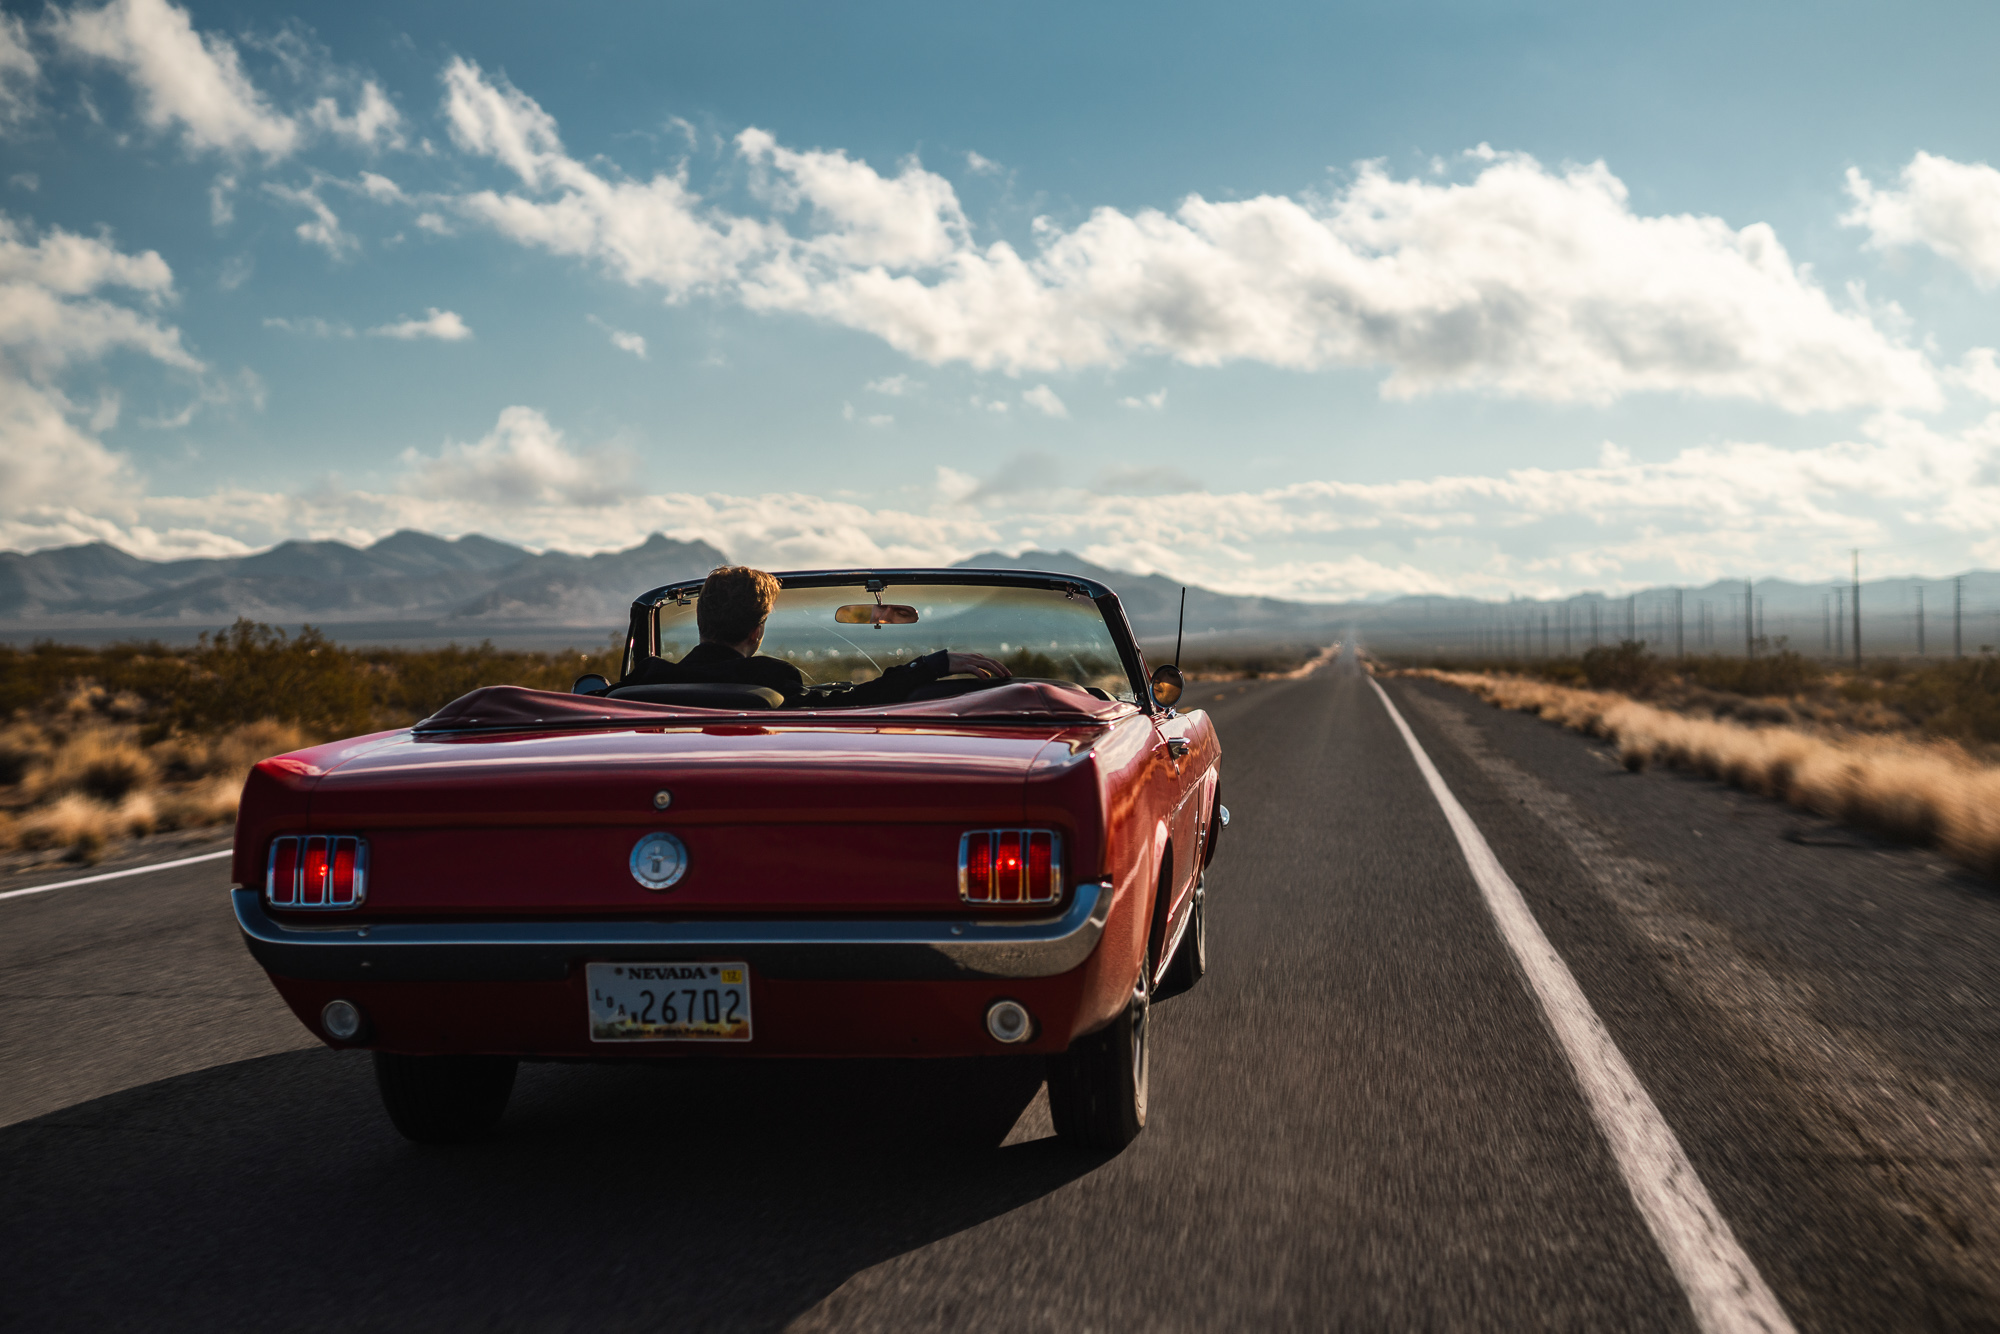 Photo: RED Mustang serie. (by Ilya Nodia)